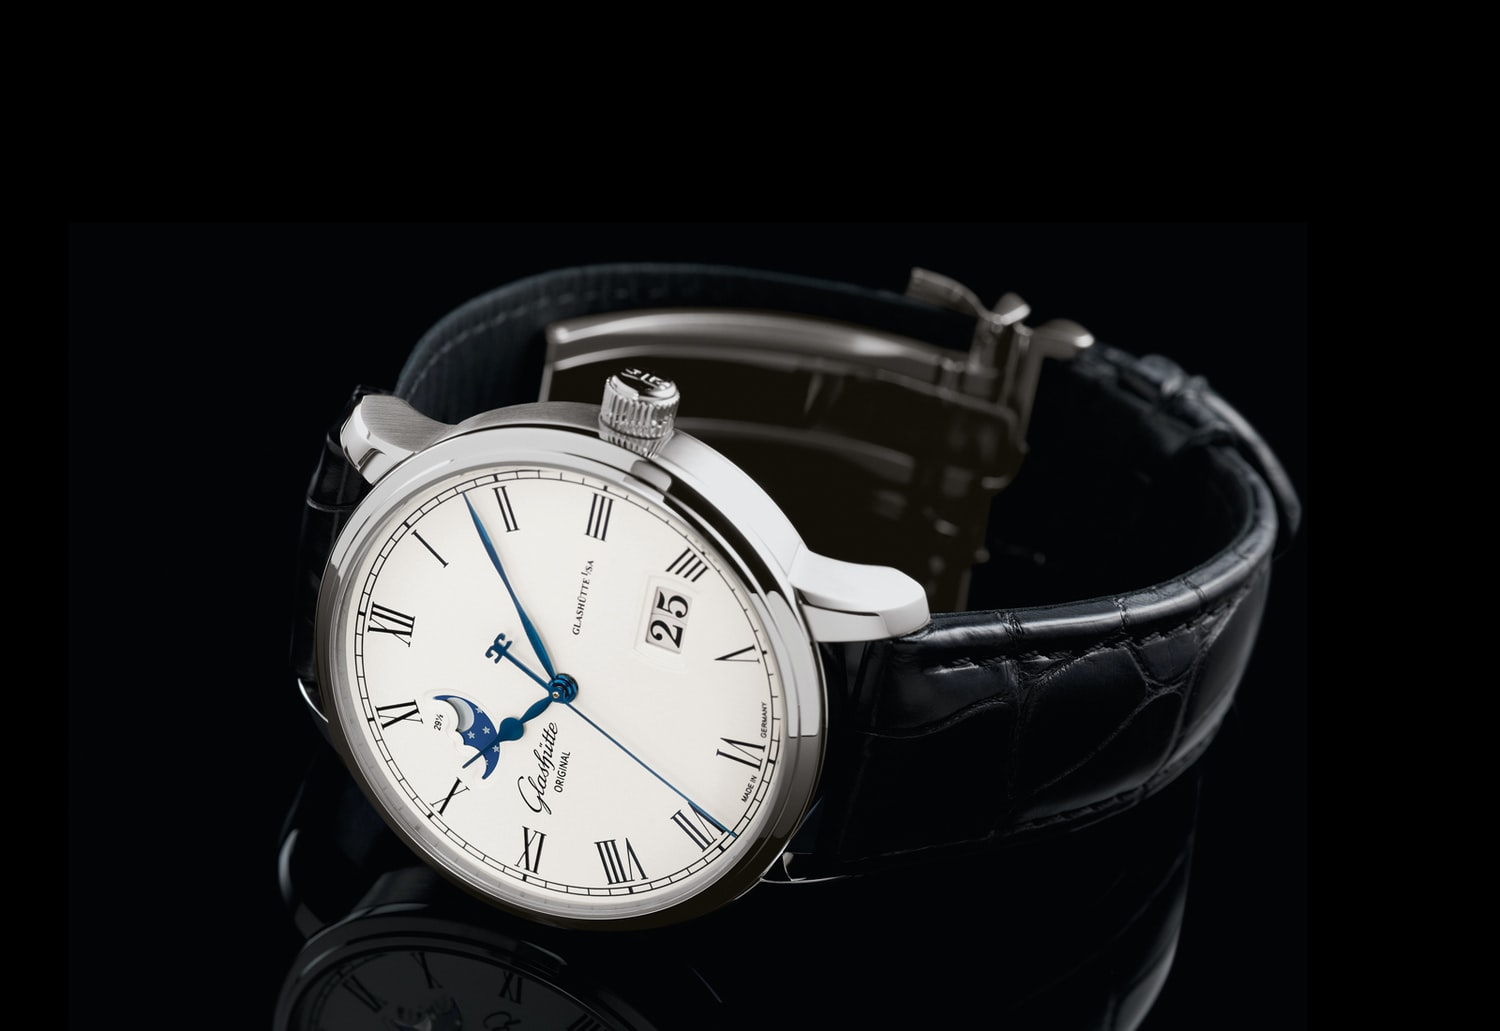 Introducing The New Glashütte Original Senator Panorama Date Moon Phase